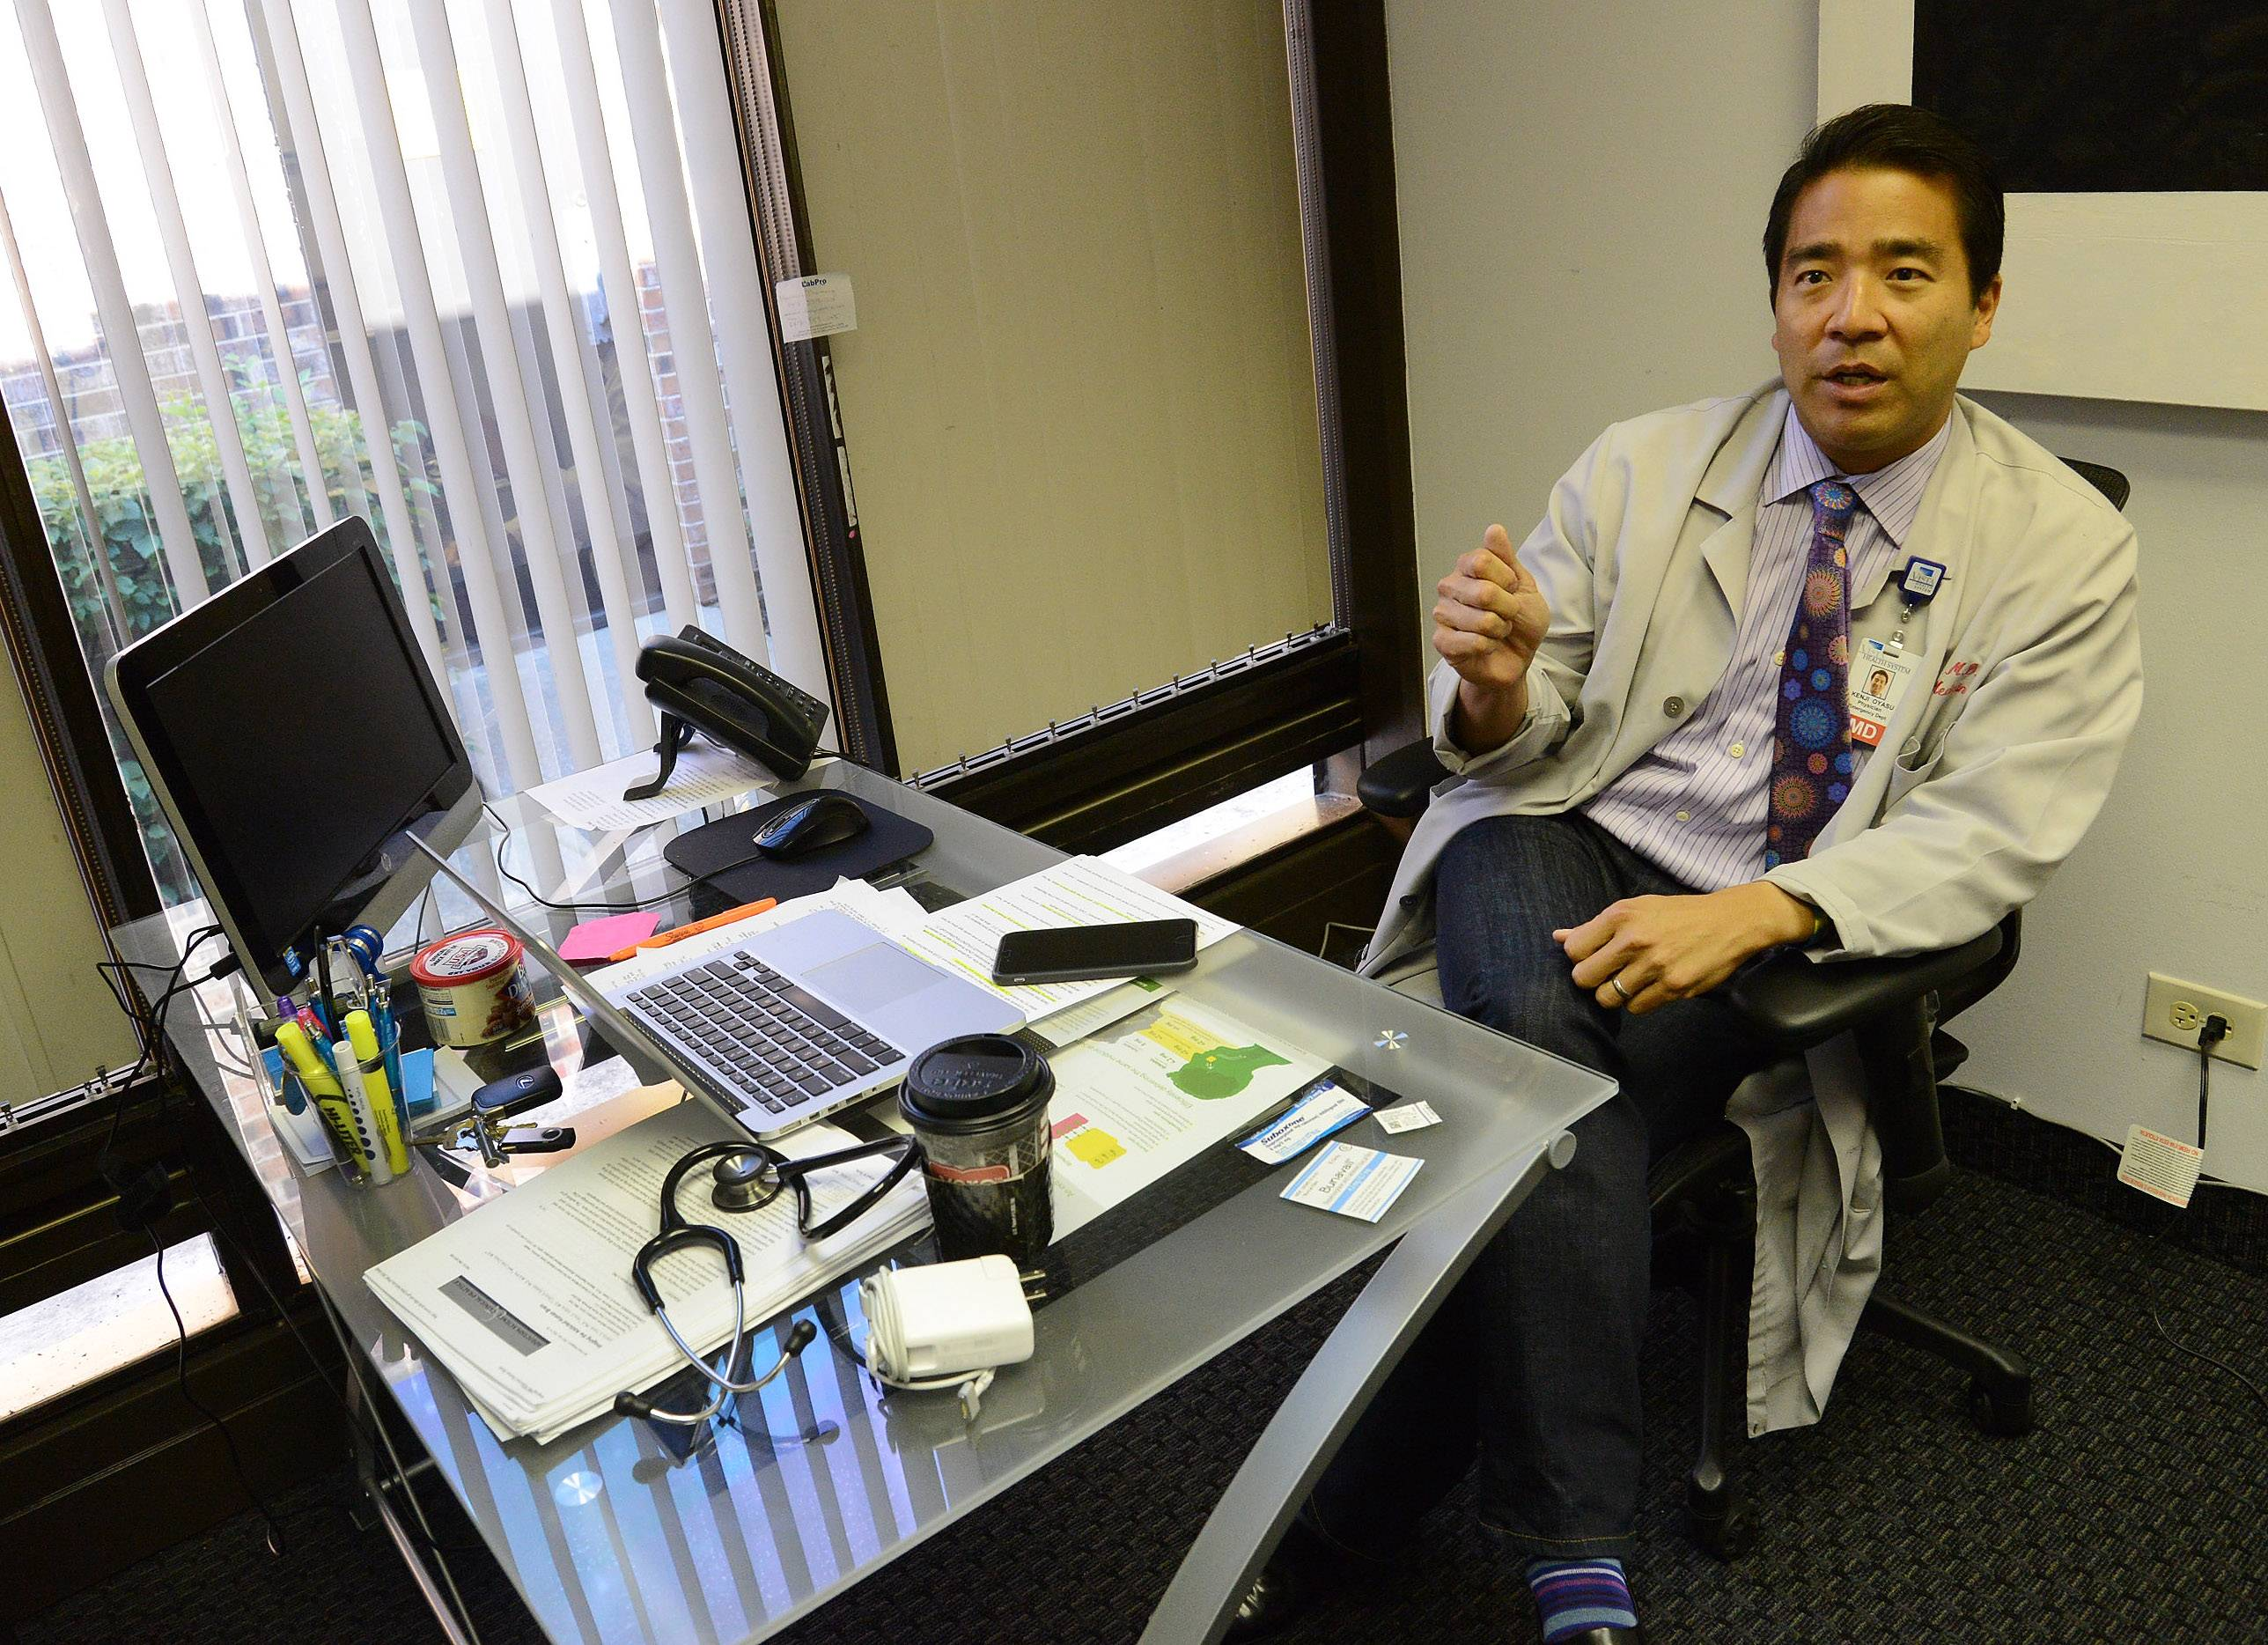 Dr. Kenji Oyasu prescribes buprenorphine, one of three main FDA-approved medications to treat heroin and opioid addiction, to patients at Brightside Clinic in Northbrook, which he opened in May 2015.